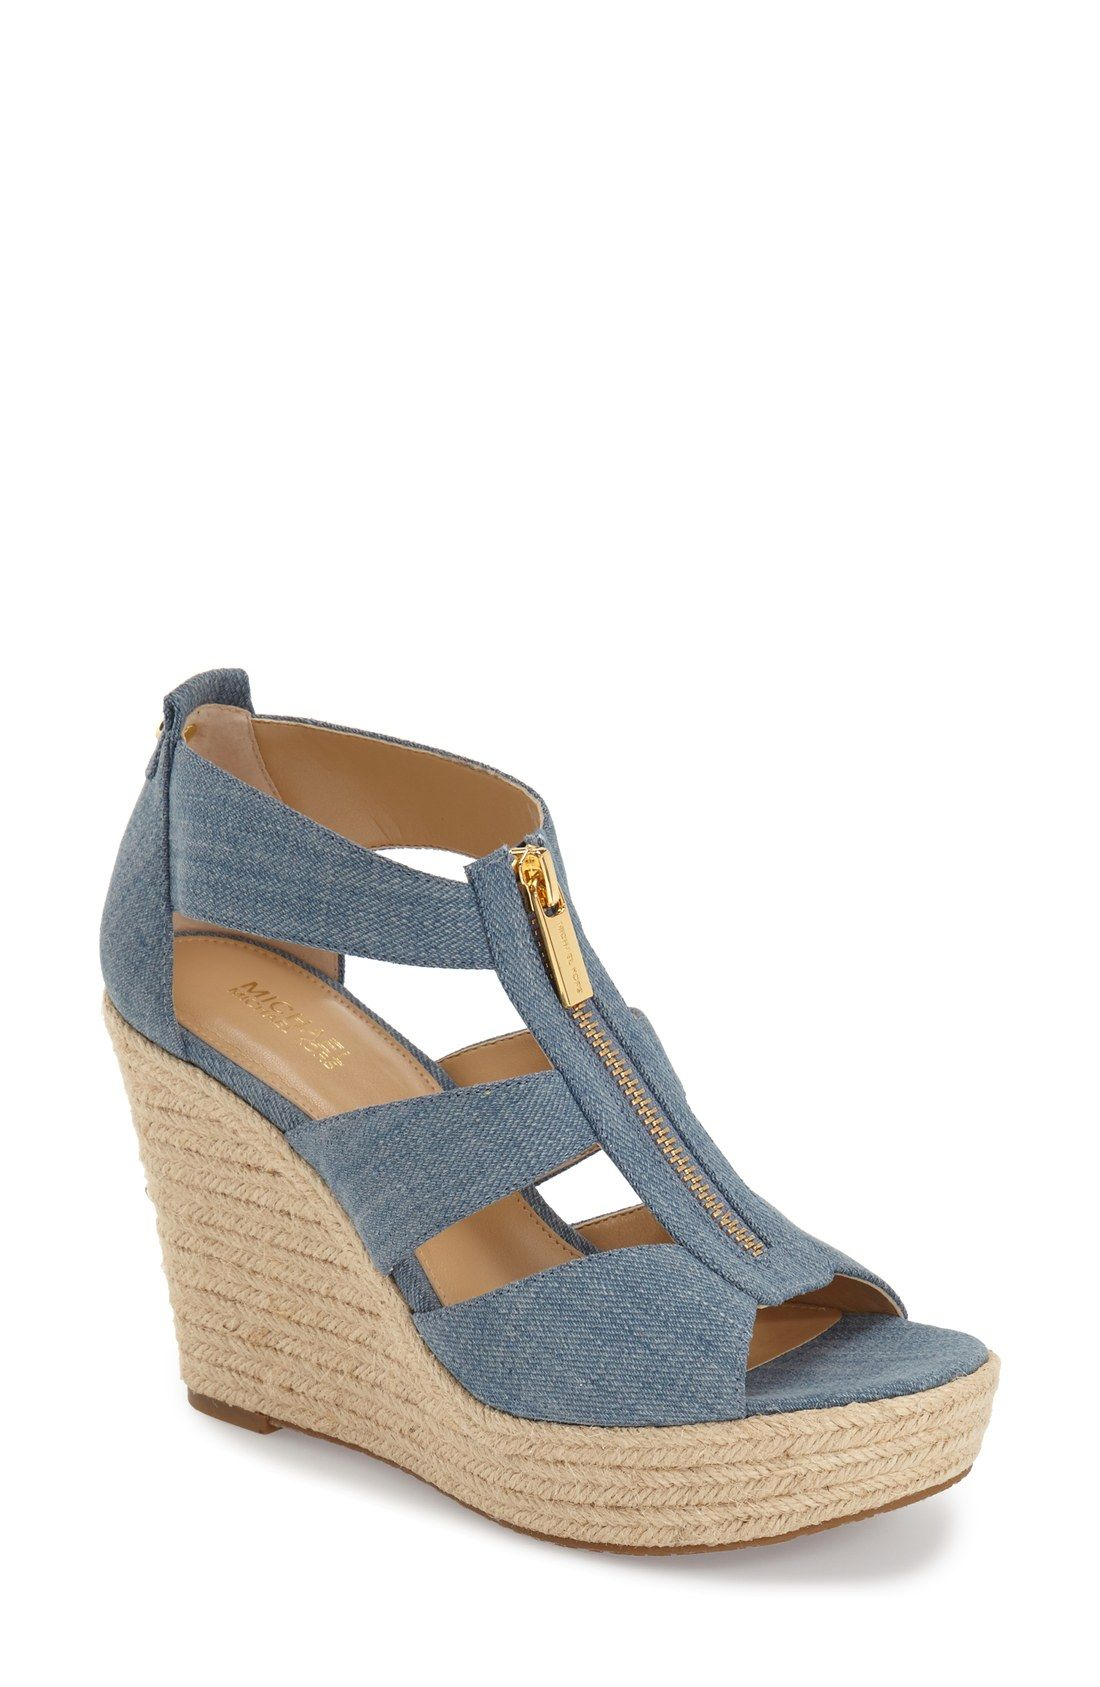 MICHAEL Michael Kors 'Damita' Wedge Sandal (Women). Almost bought these,